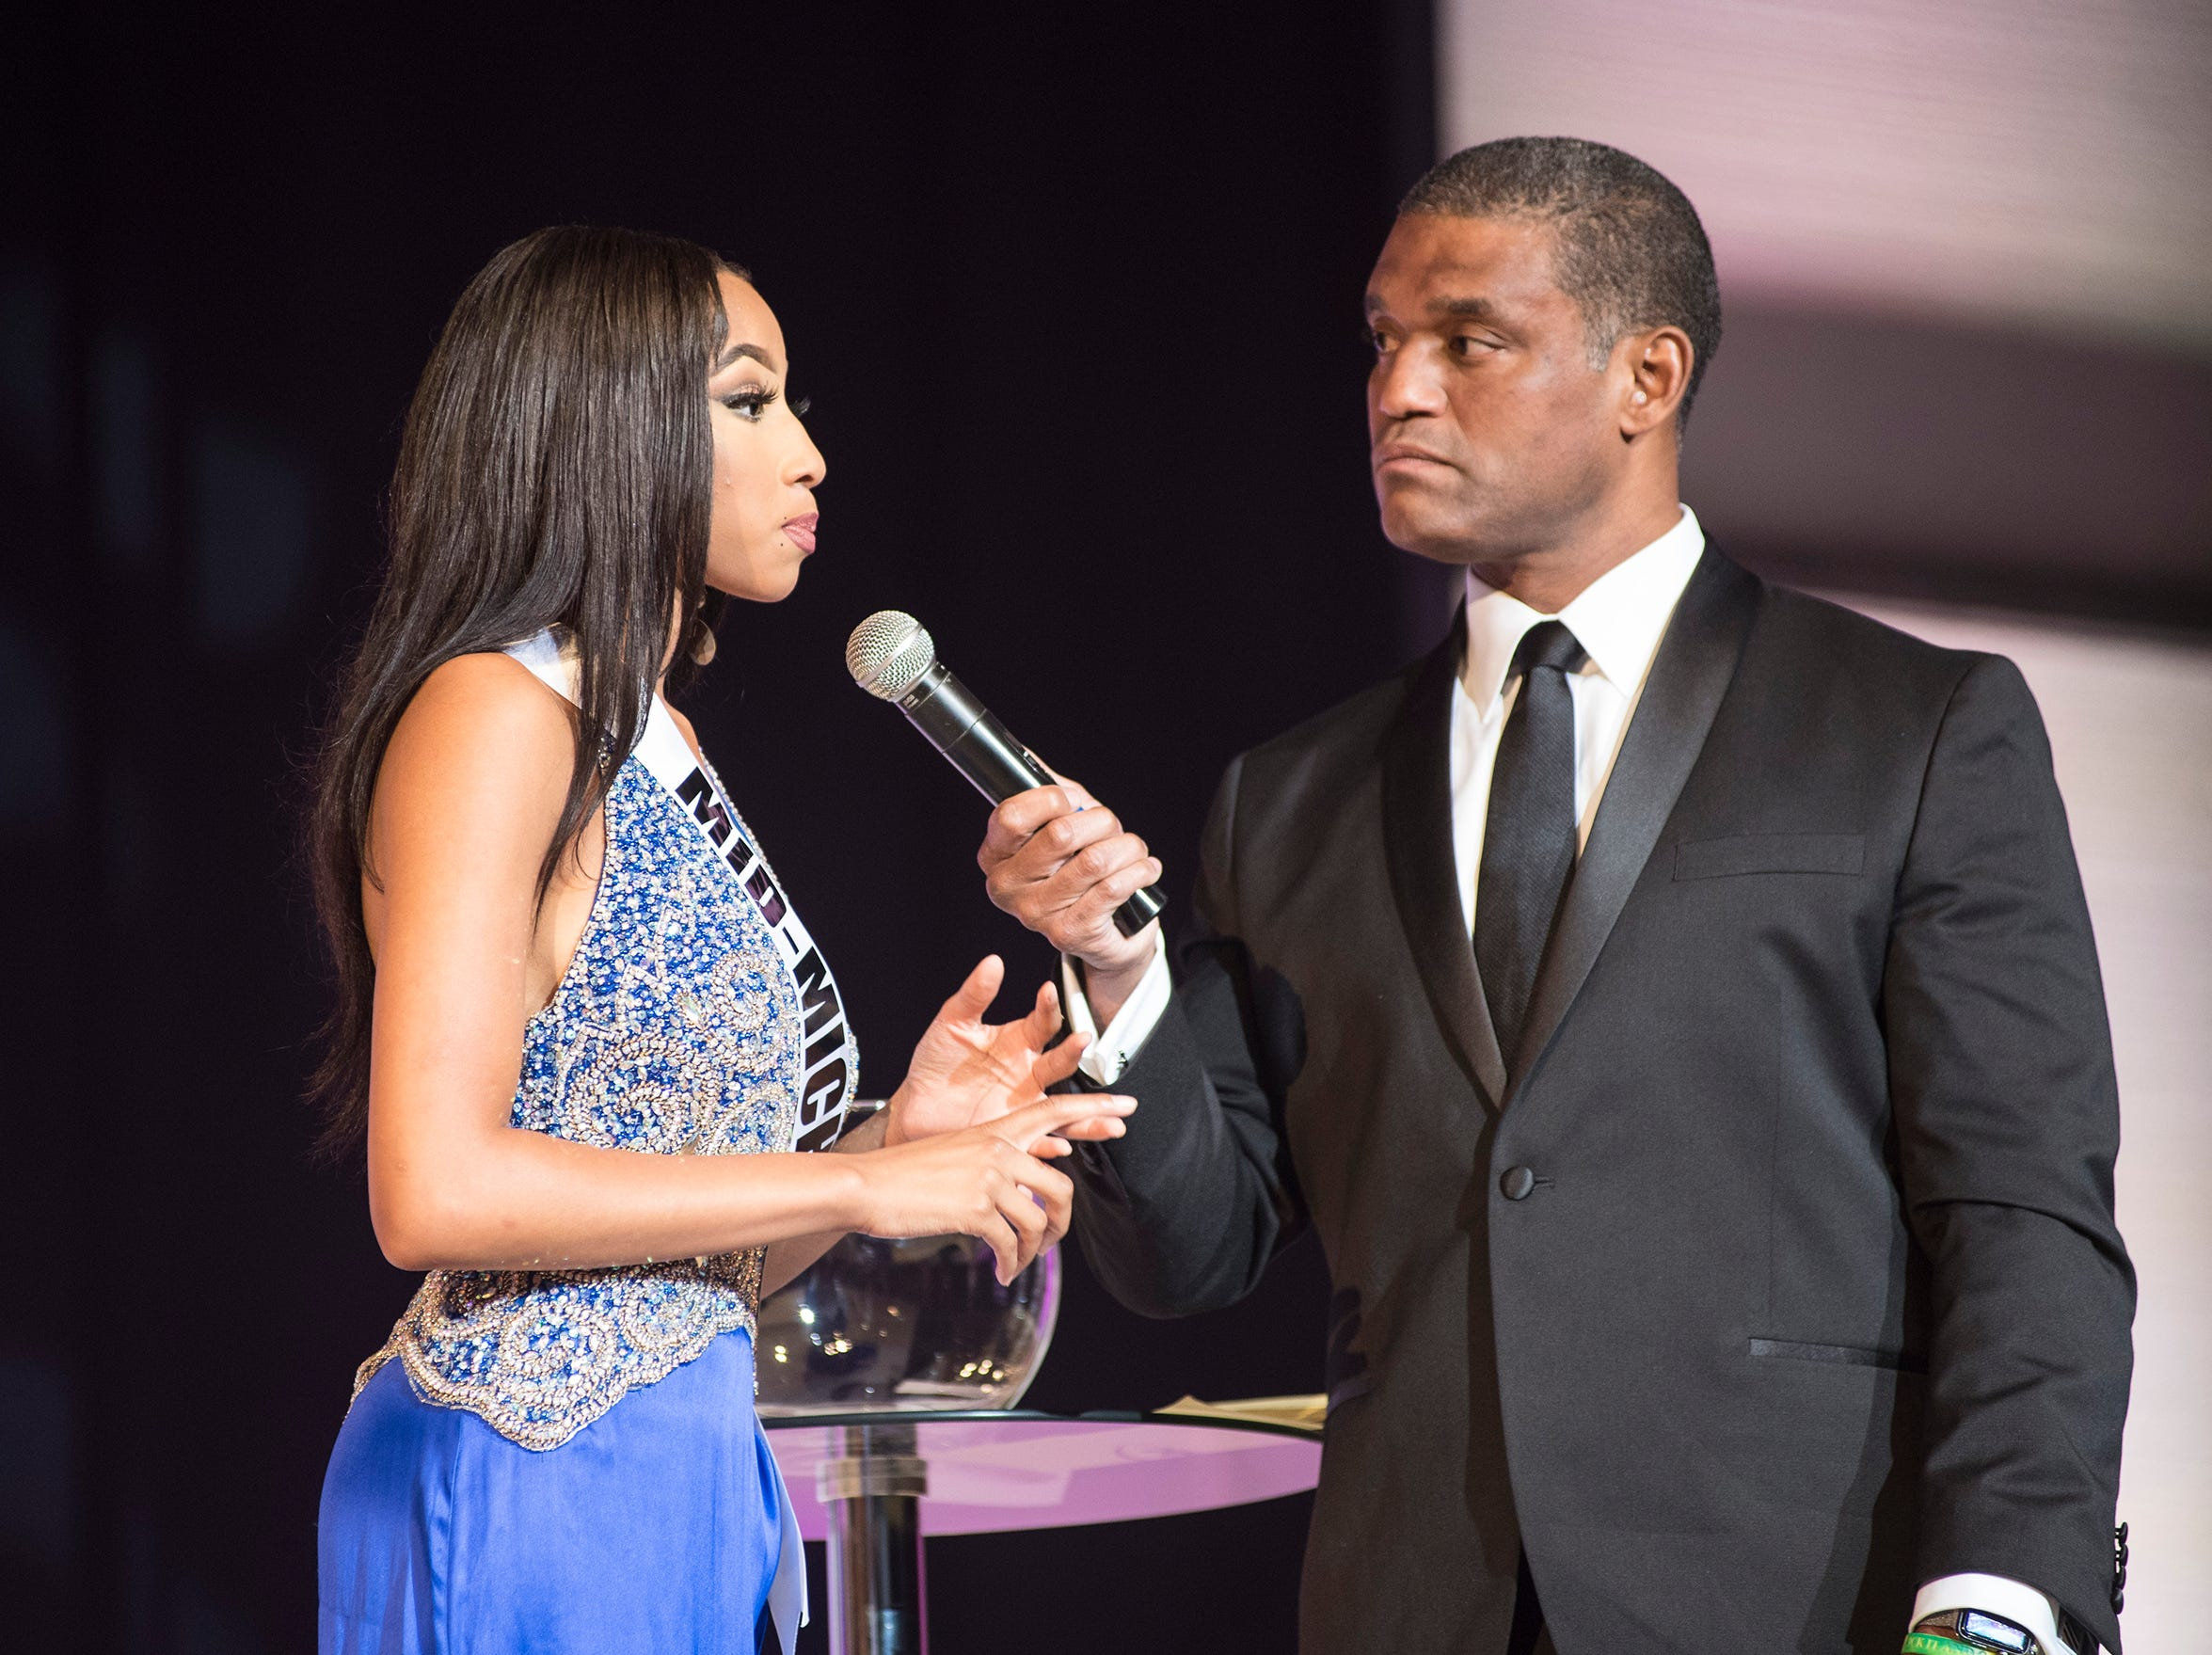 Miss Mid-Michigan Unjanee' Wells, left, is questioned by Cincinnati TV personality Rob Williams Saturday, Sept. 22, 2018 during the final round of the Miss Michigan USA pageant at McMorran Theater.